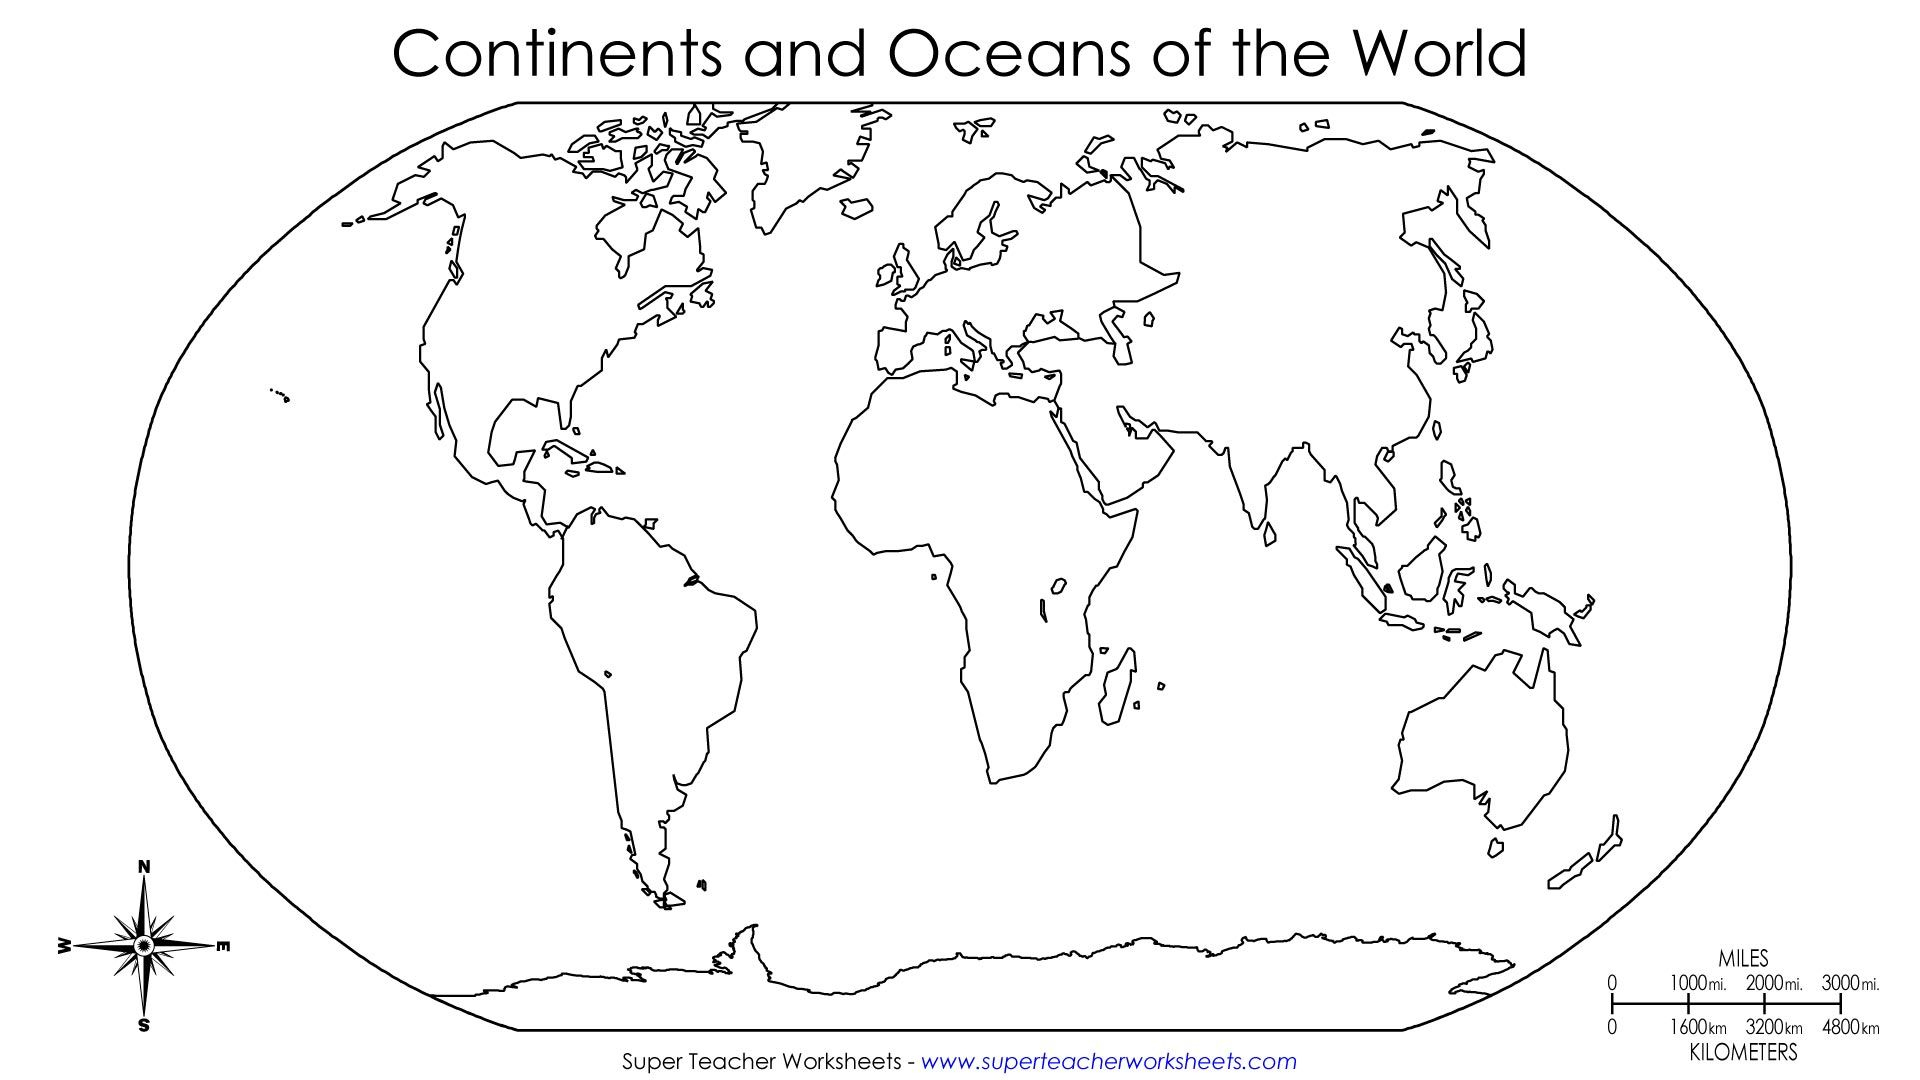 Continents Of The World Worksheets | This Basic World Map Shows The | Free Printable World Map Worksheets